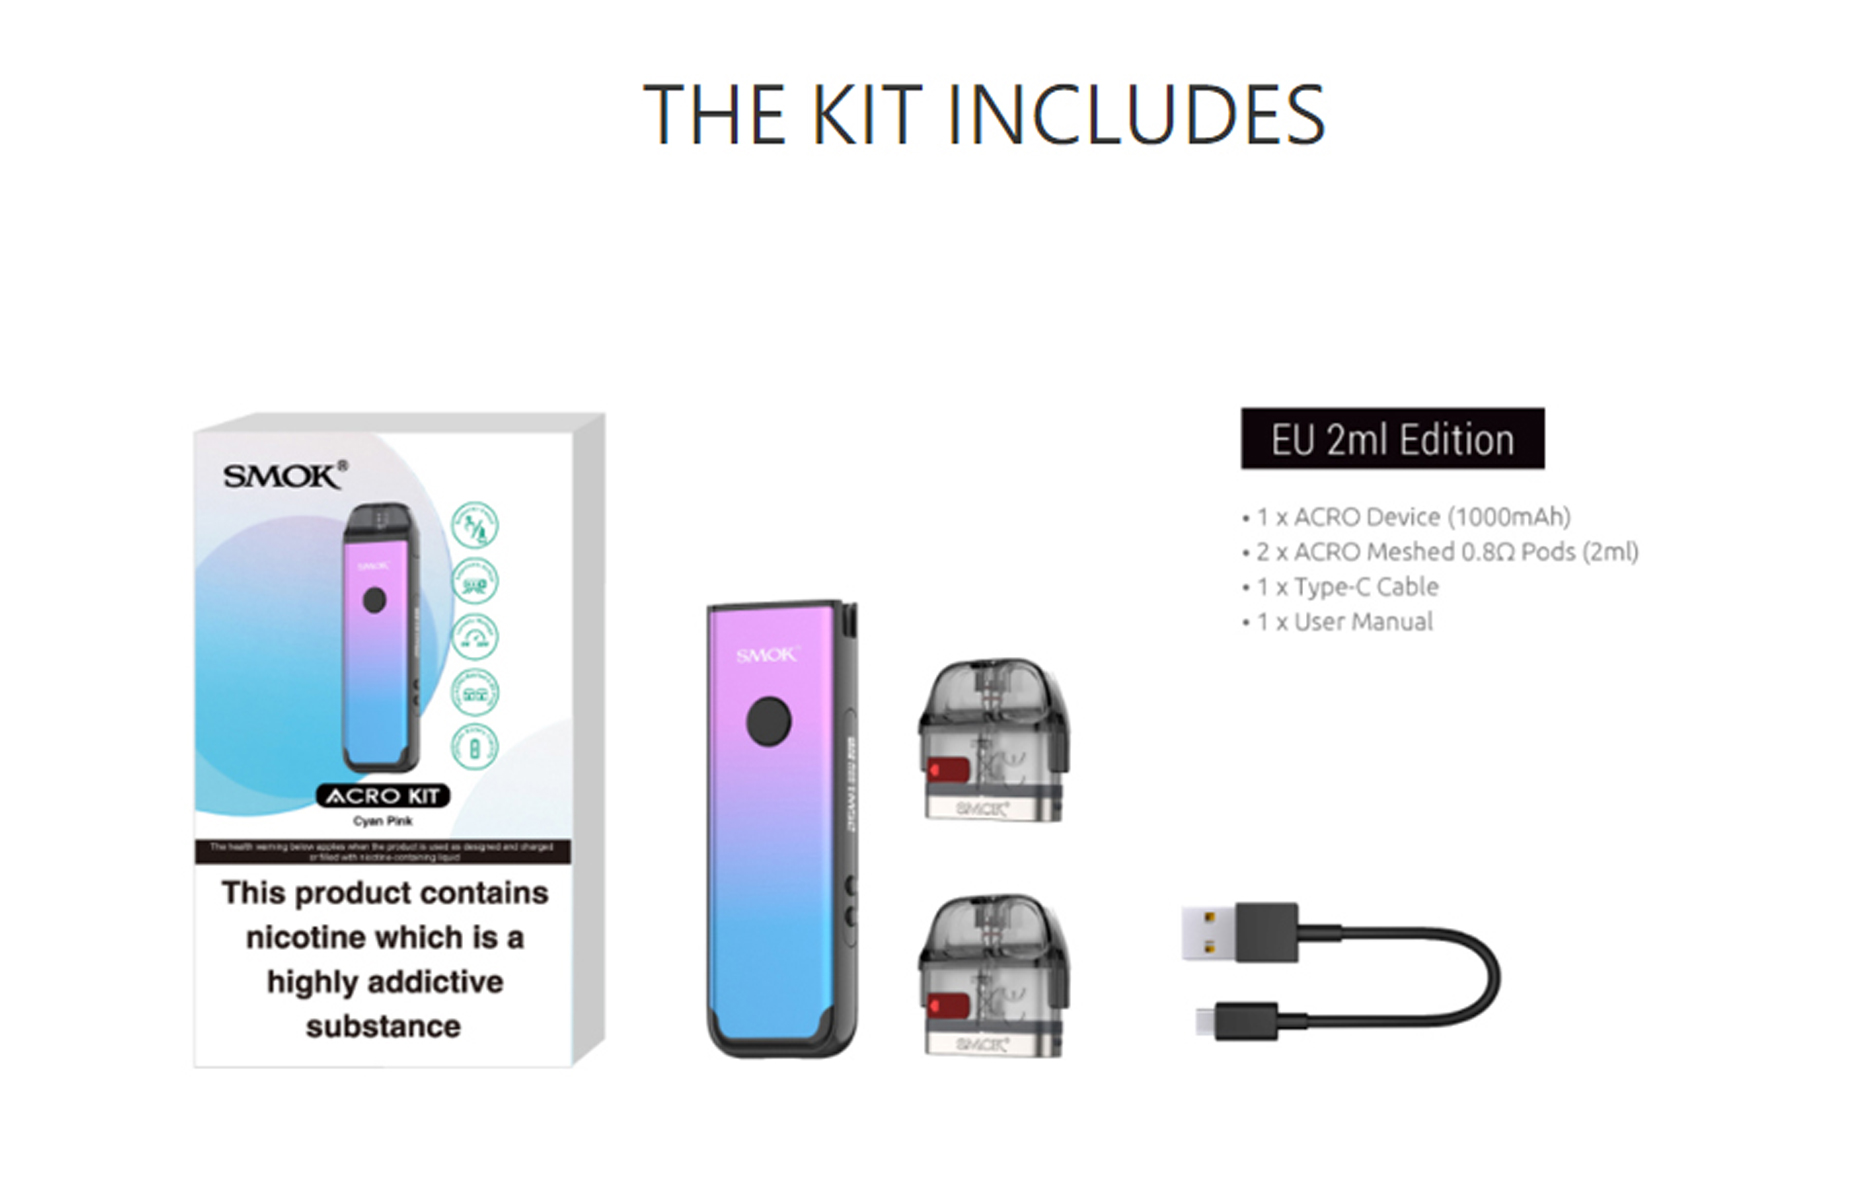 kit includes